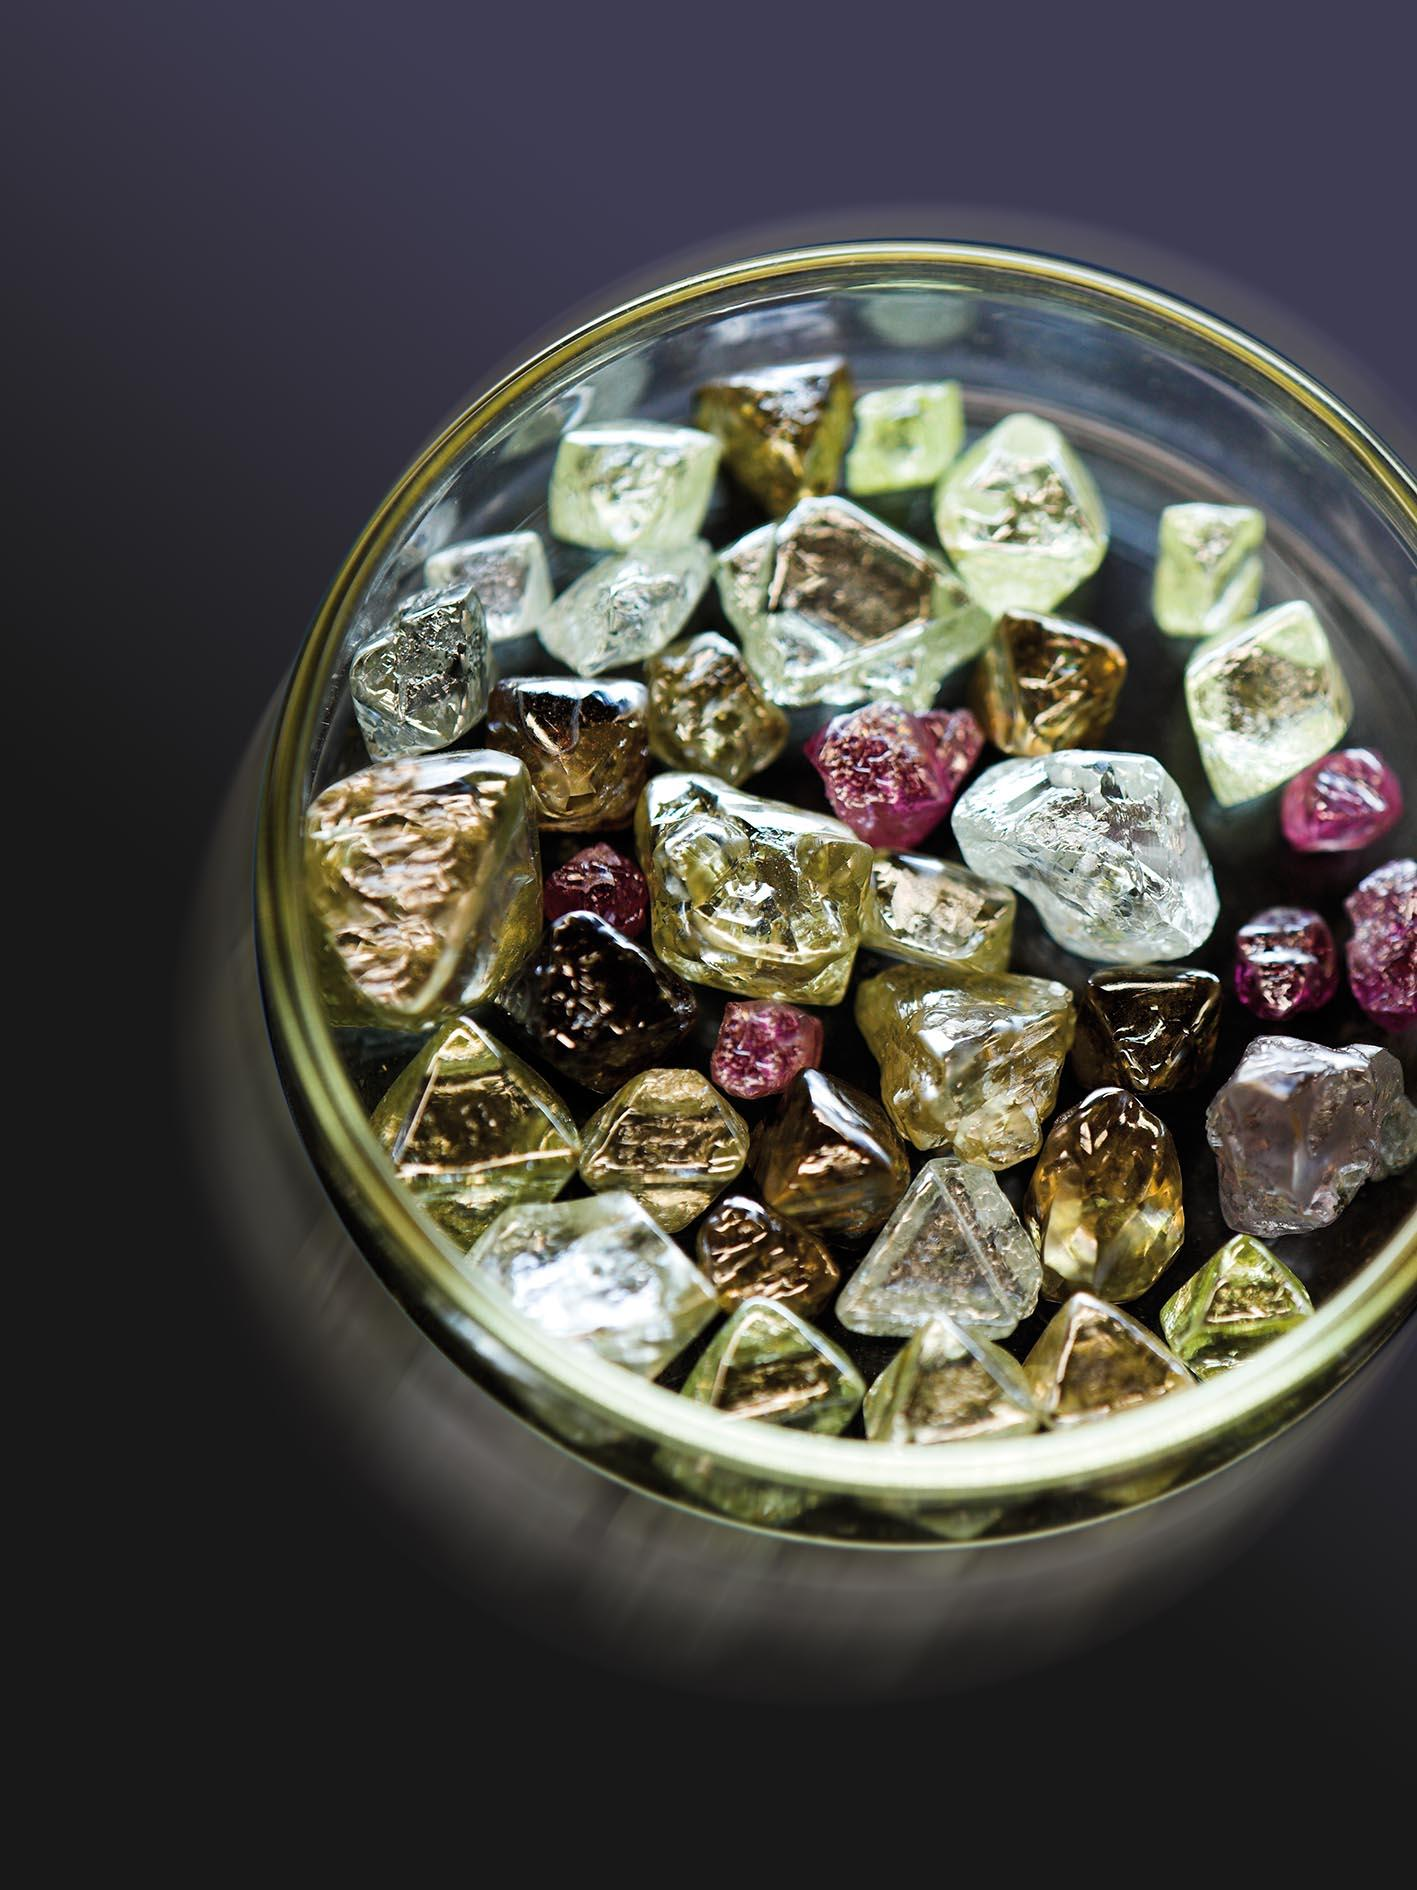 Rio Tinto has lowered its estimate of diamonds it can viably extract from the Argyle mine